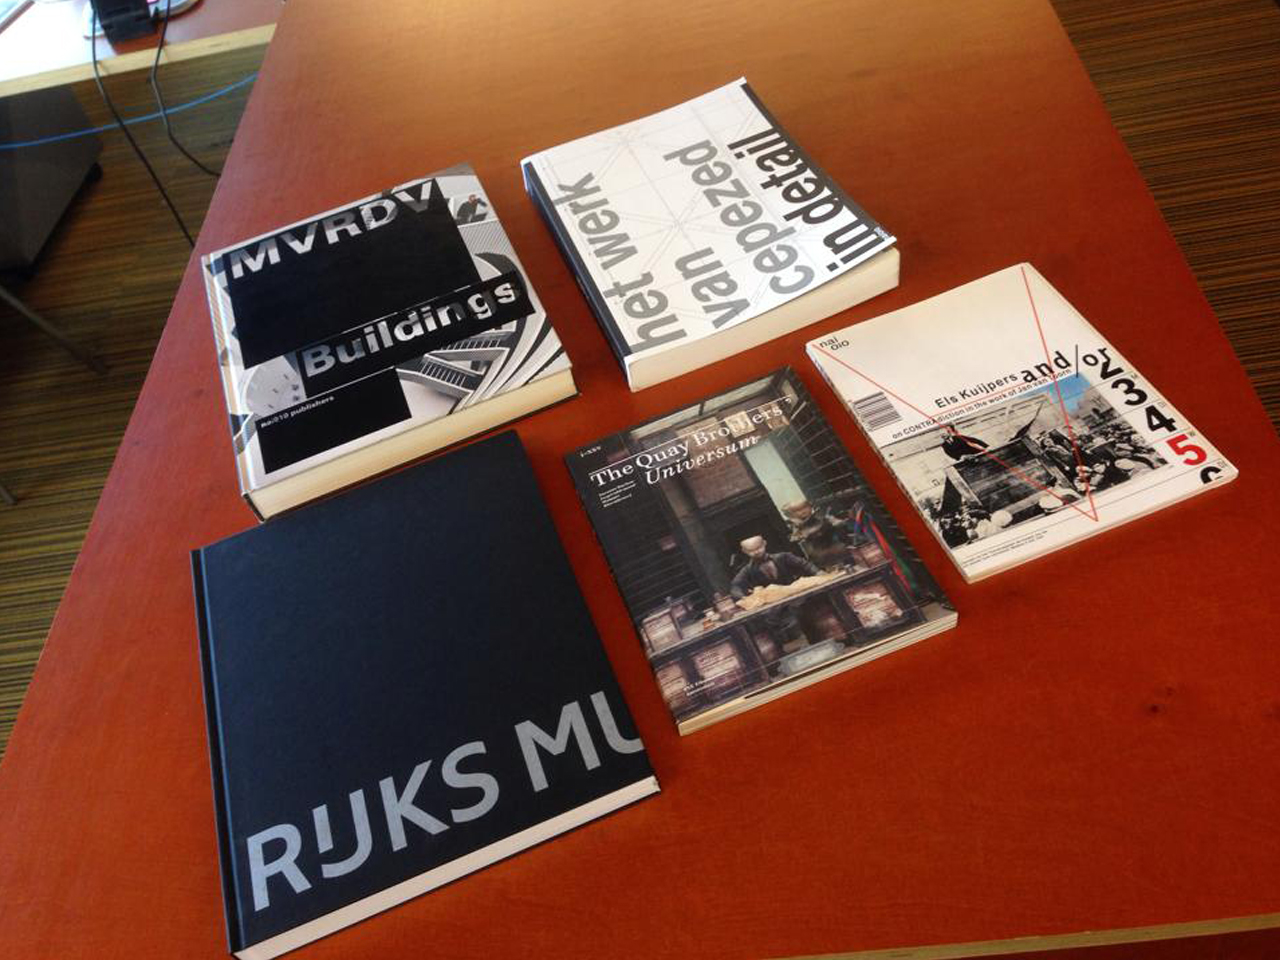 MVRDV Buildings monograph: one of the Best Dutch Book Designs of 2013